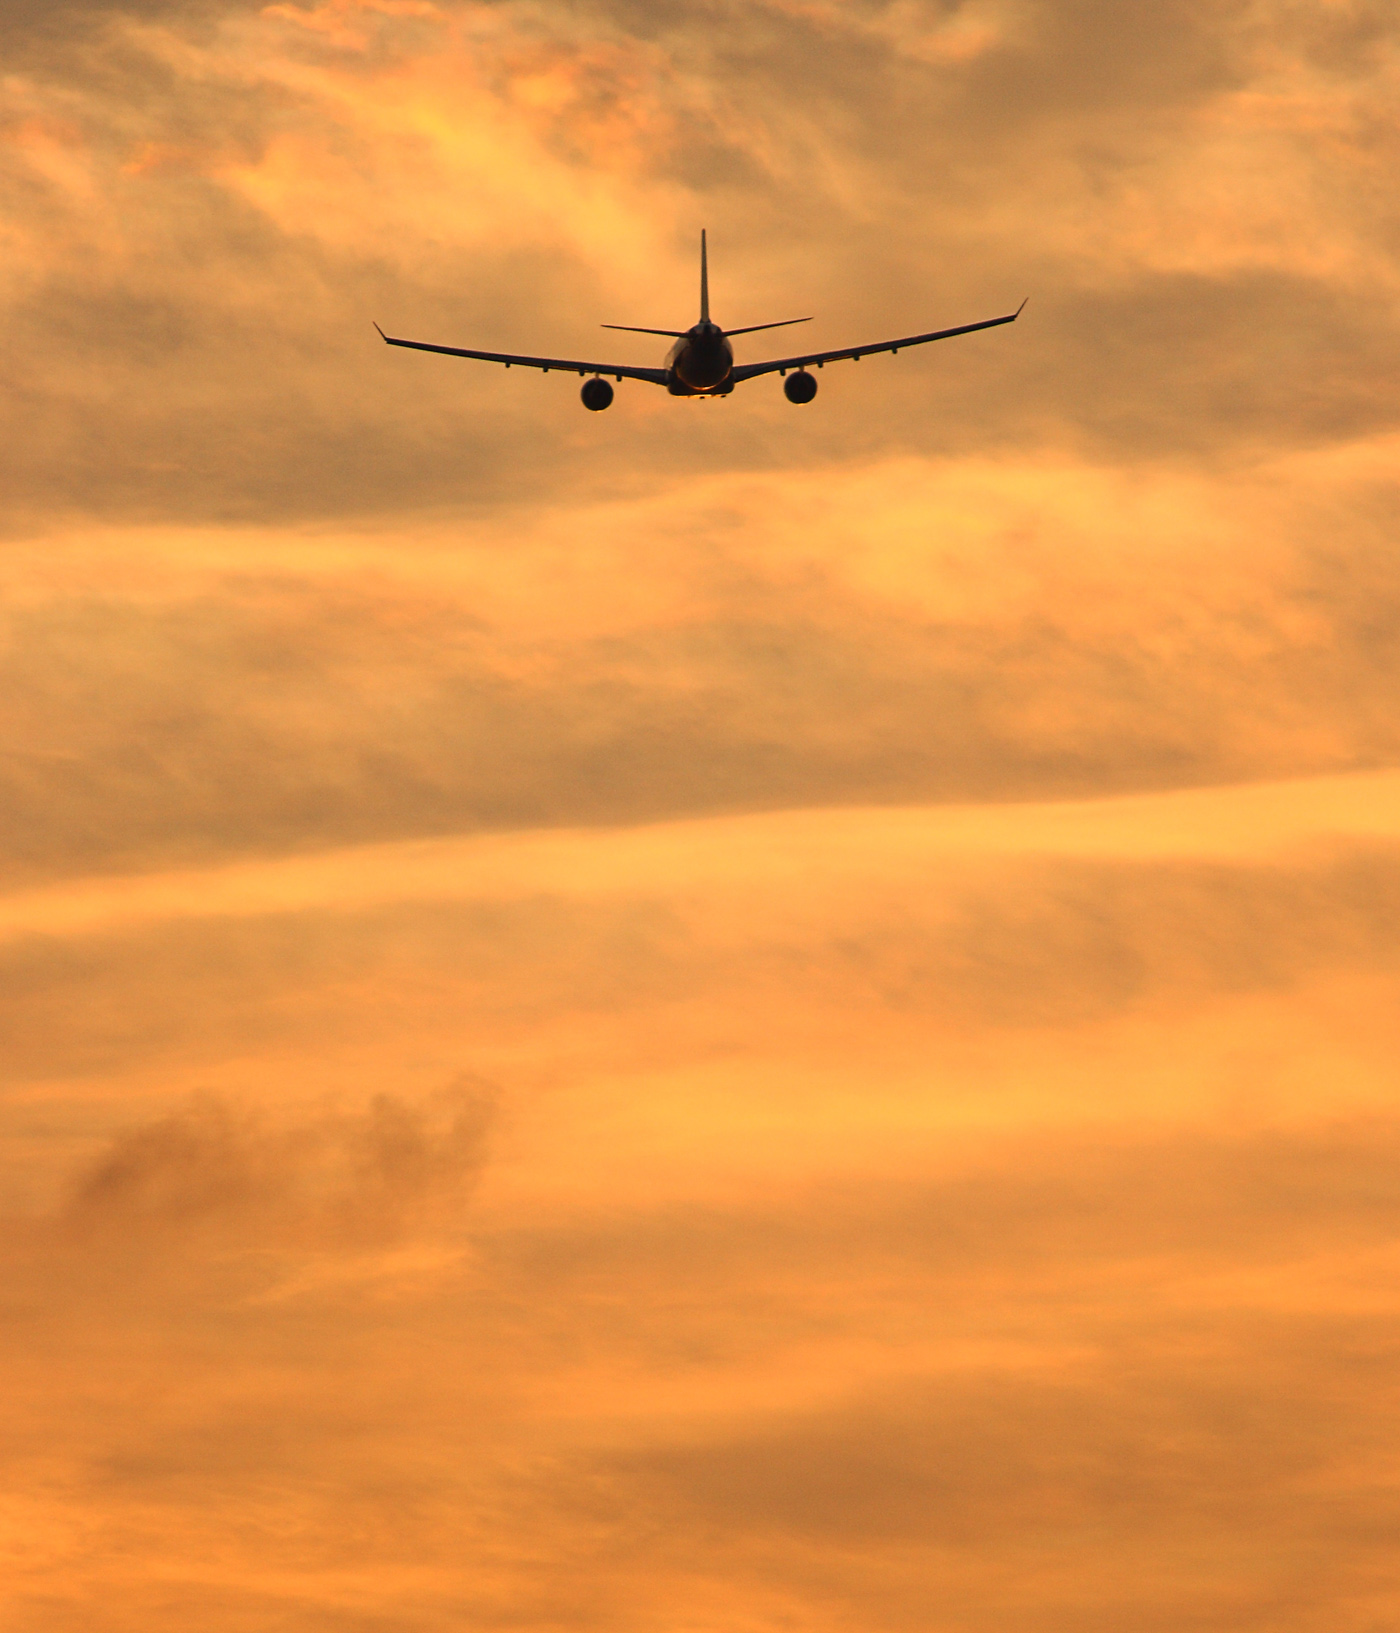 Airplane flying to a tropical destination into the sunset photo